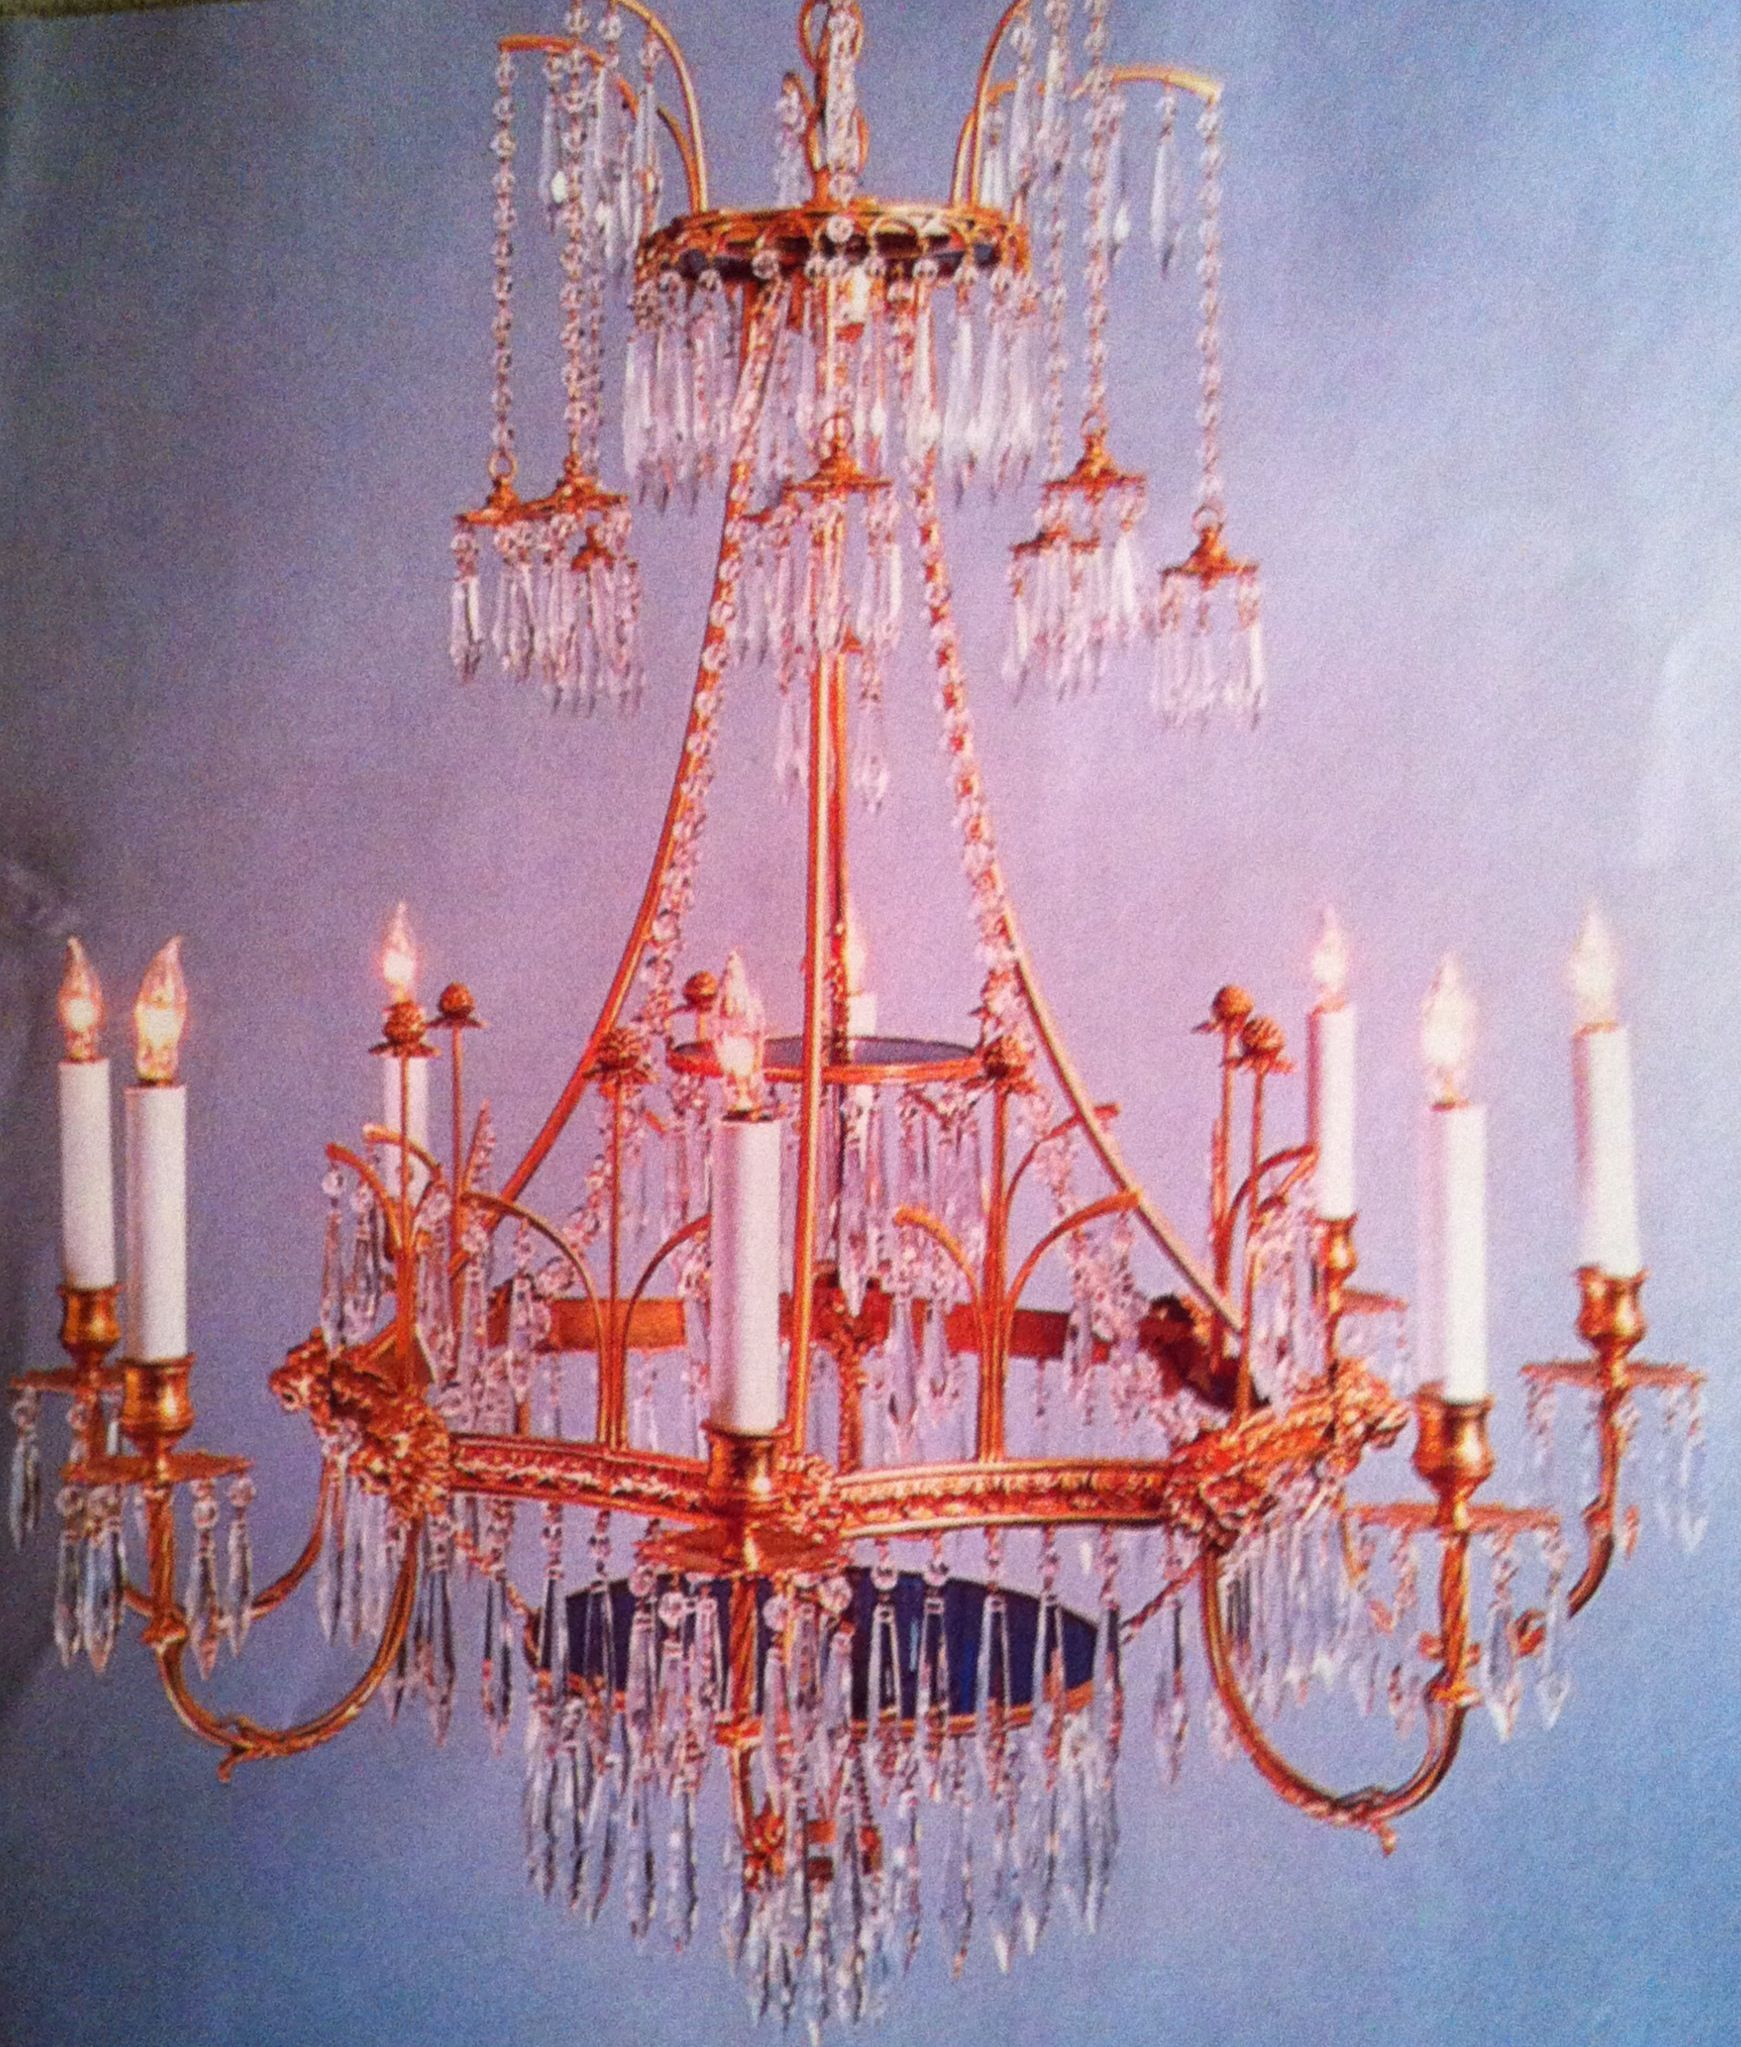 Tisserant art styles swedish chandelier through christopher tisserant art styles swedish chandelier through arubaitofo Image collections